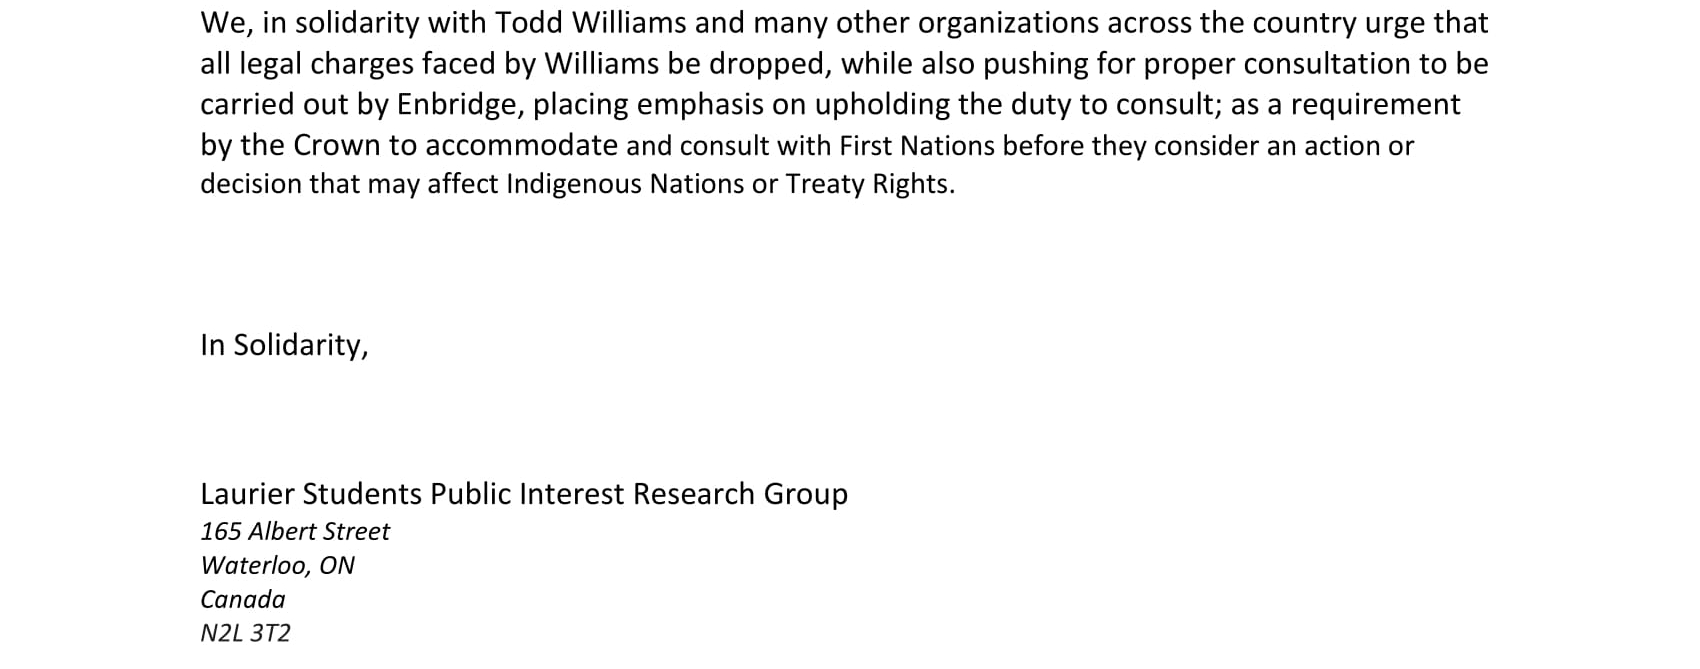 LSPIRG Letter of Support for Todd Williams-2.jpg